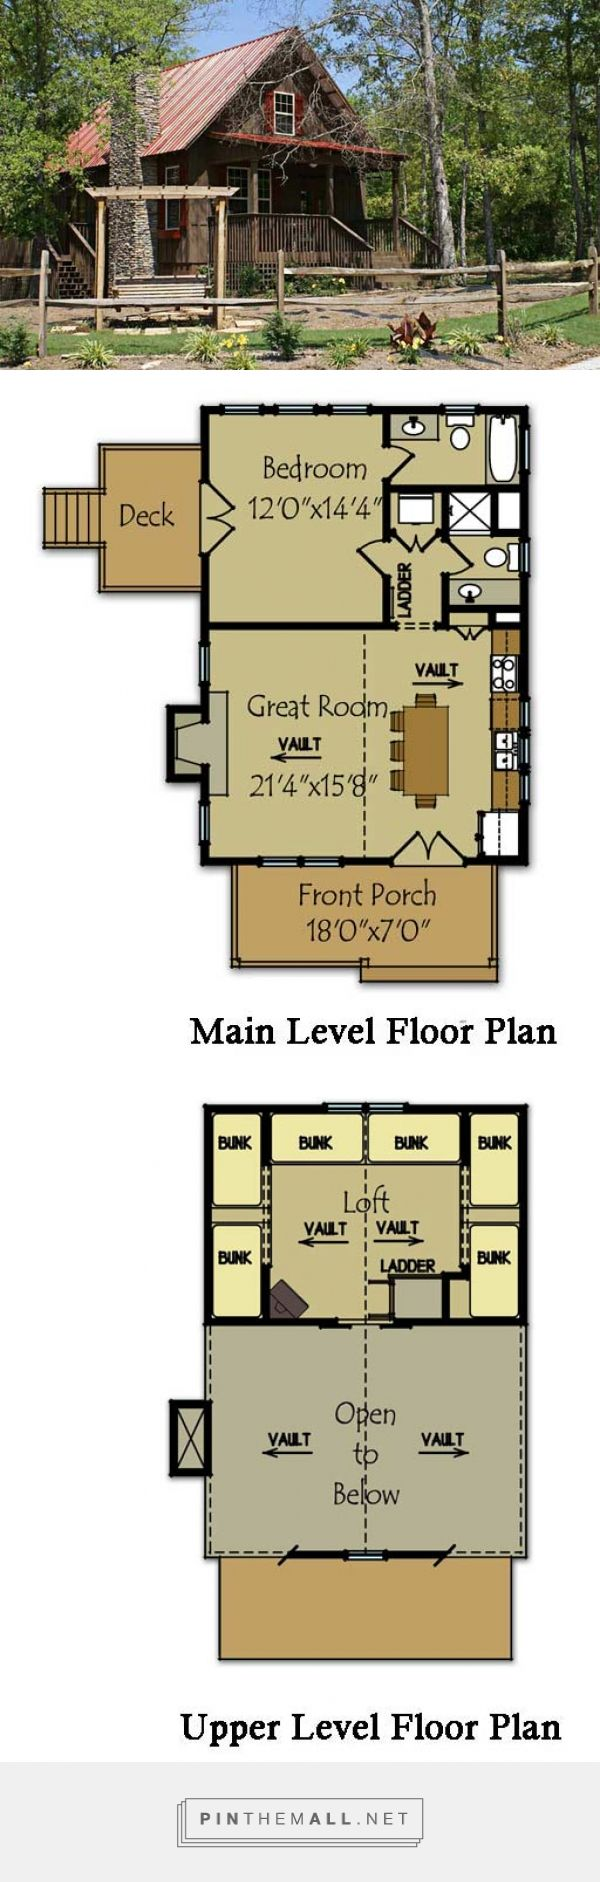 http://www.maxhouseplans.com/home-plans/small-cabin-plan/ Small Cabin Plan with loft Small Cabin House Plans... - a grouped images picture - Pin Them All